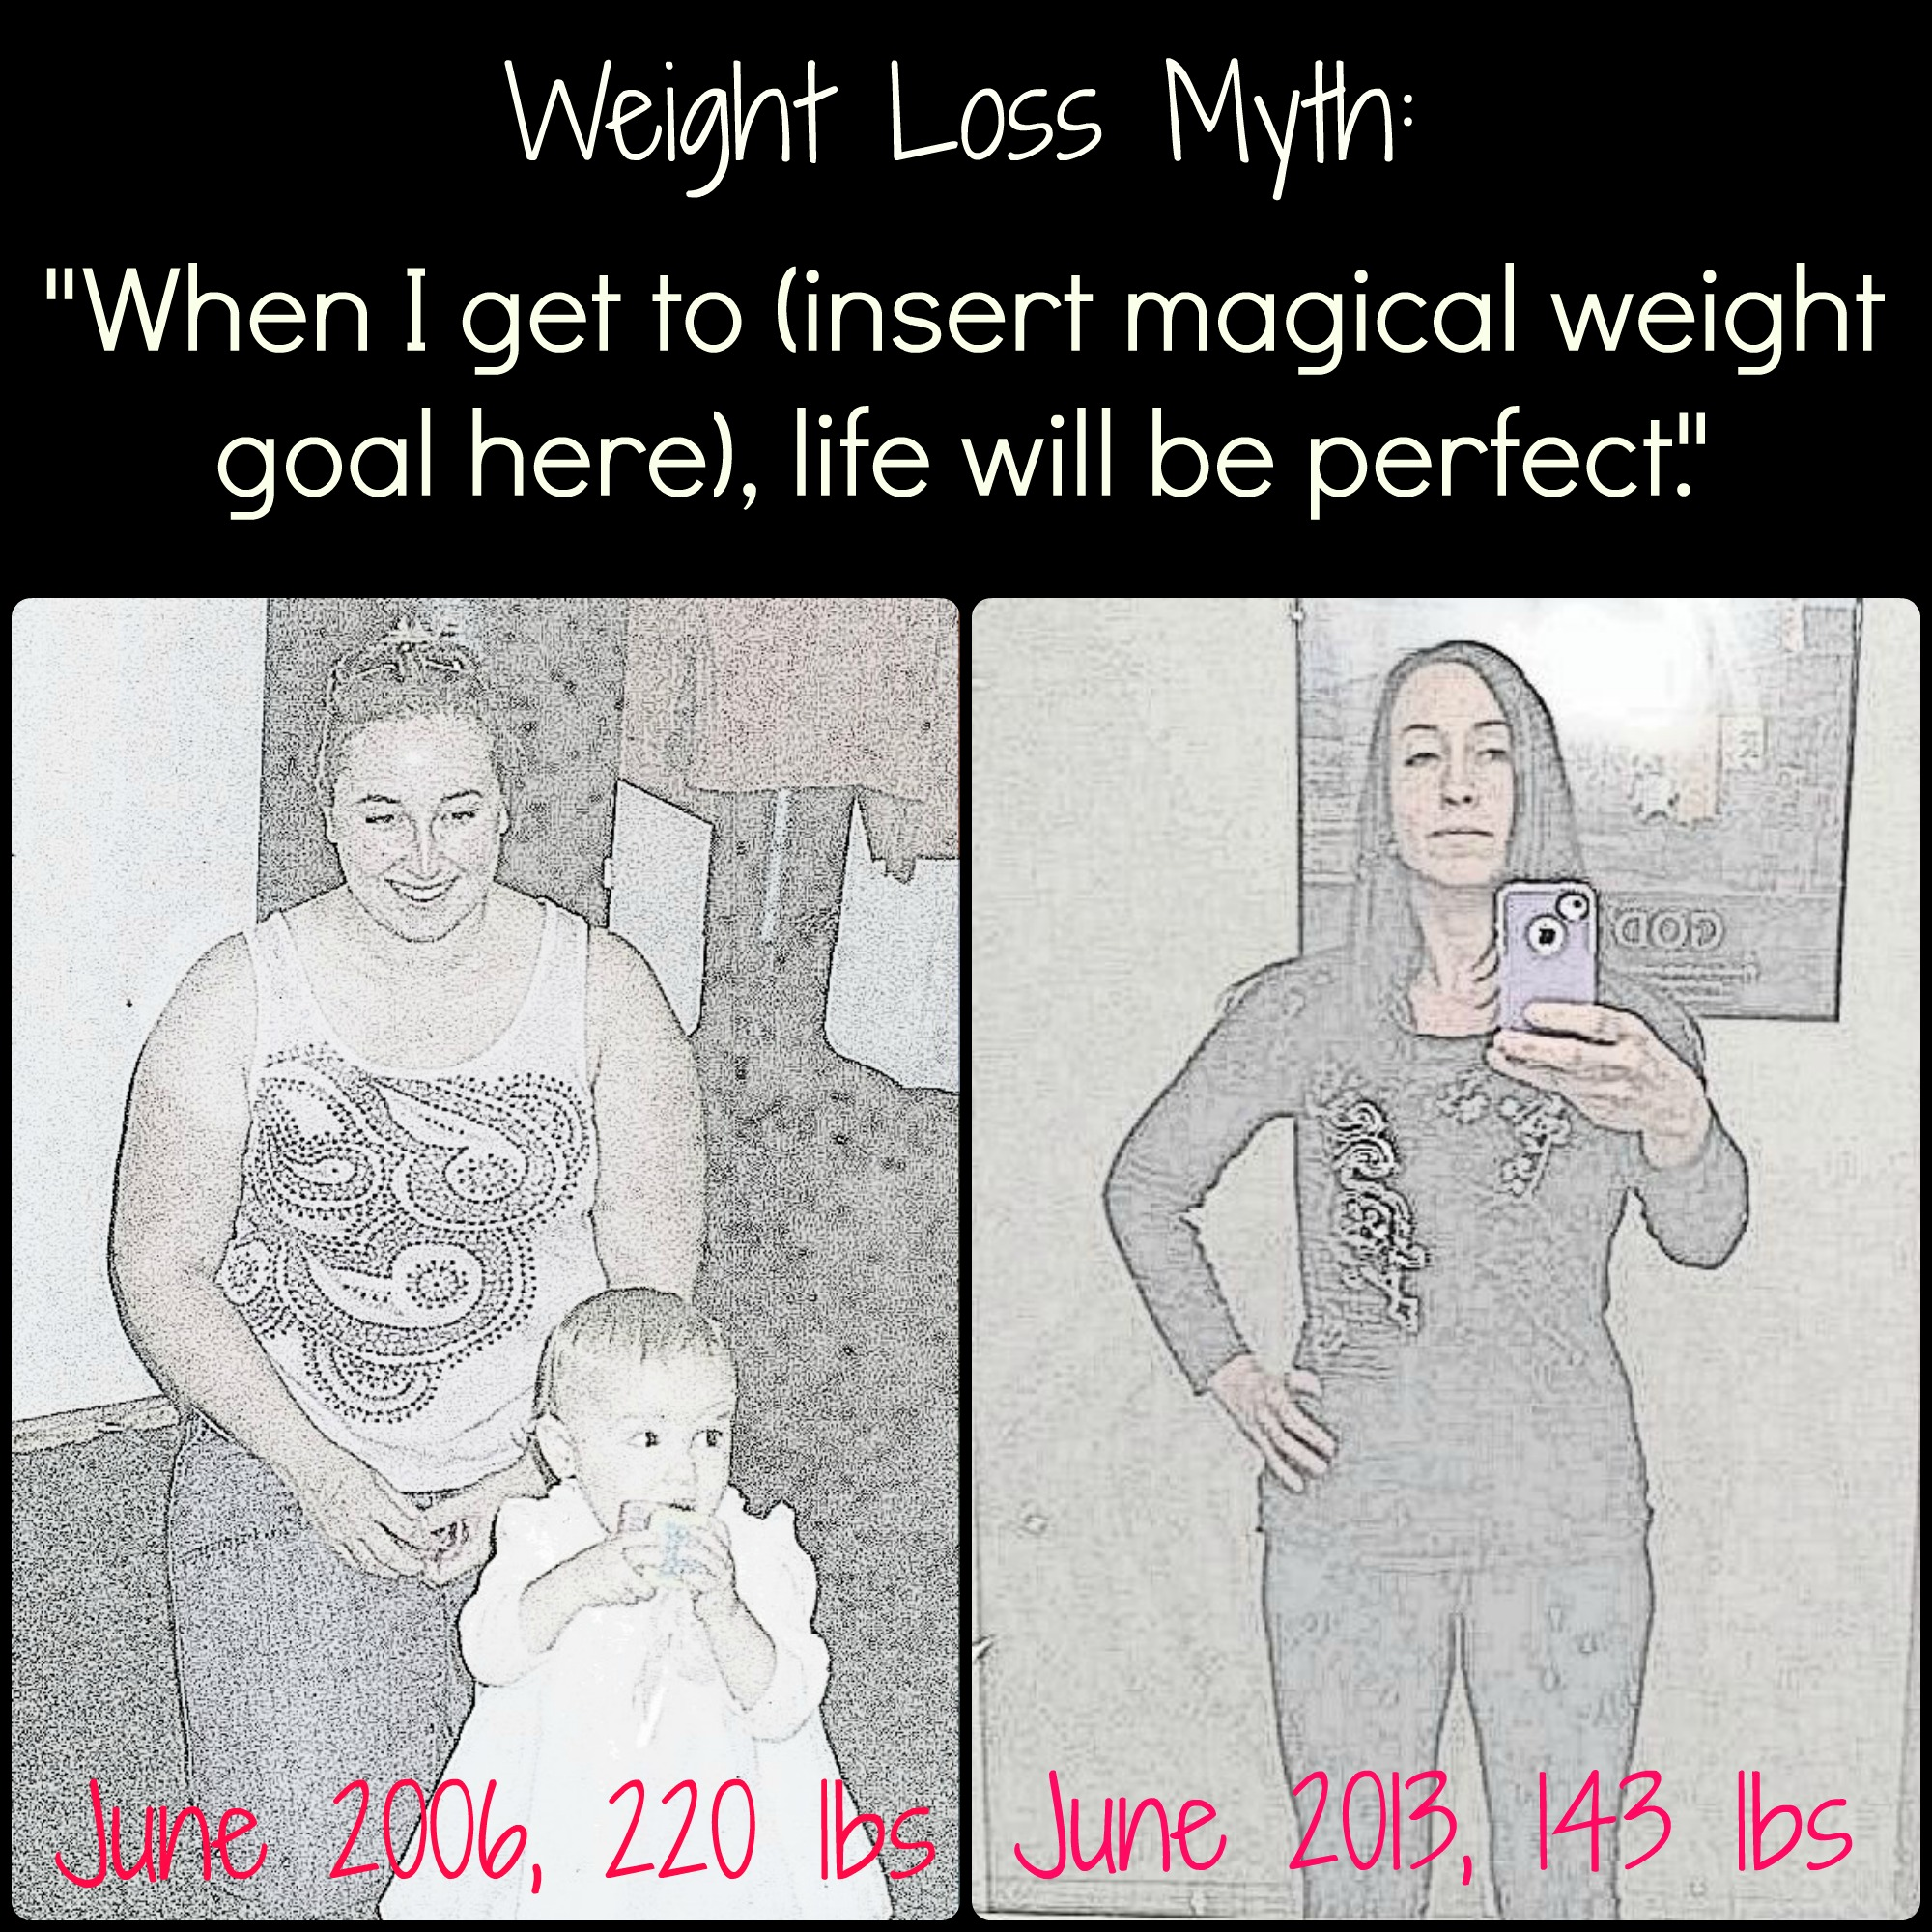 Will your goal weight make life perfect?